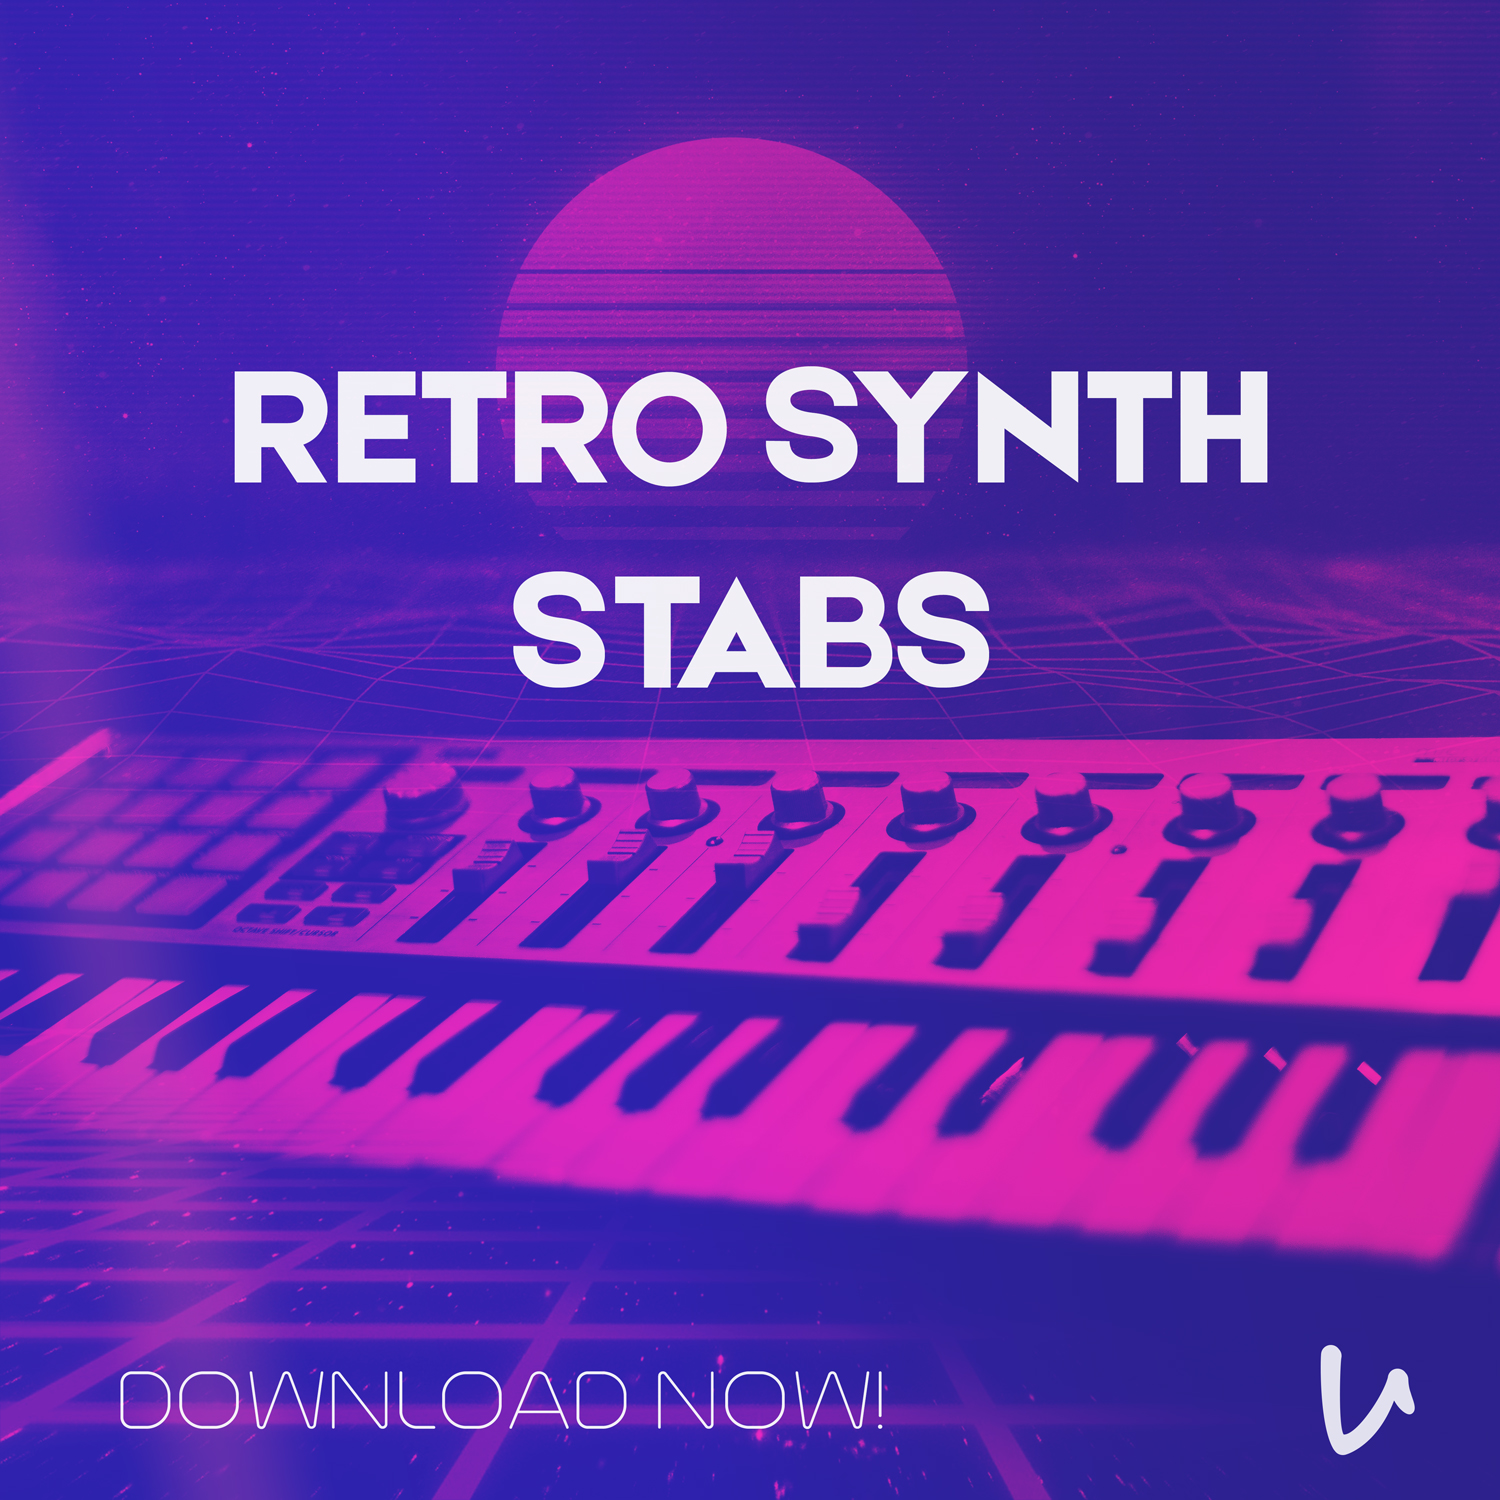 Drag and drop modern production synth sounds directly into your session